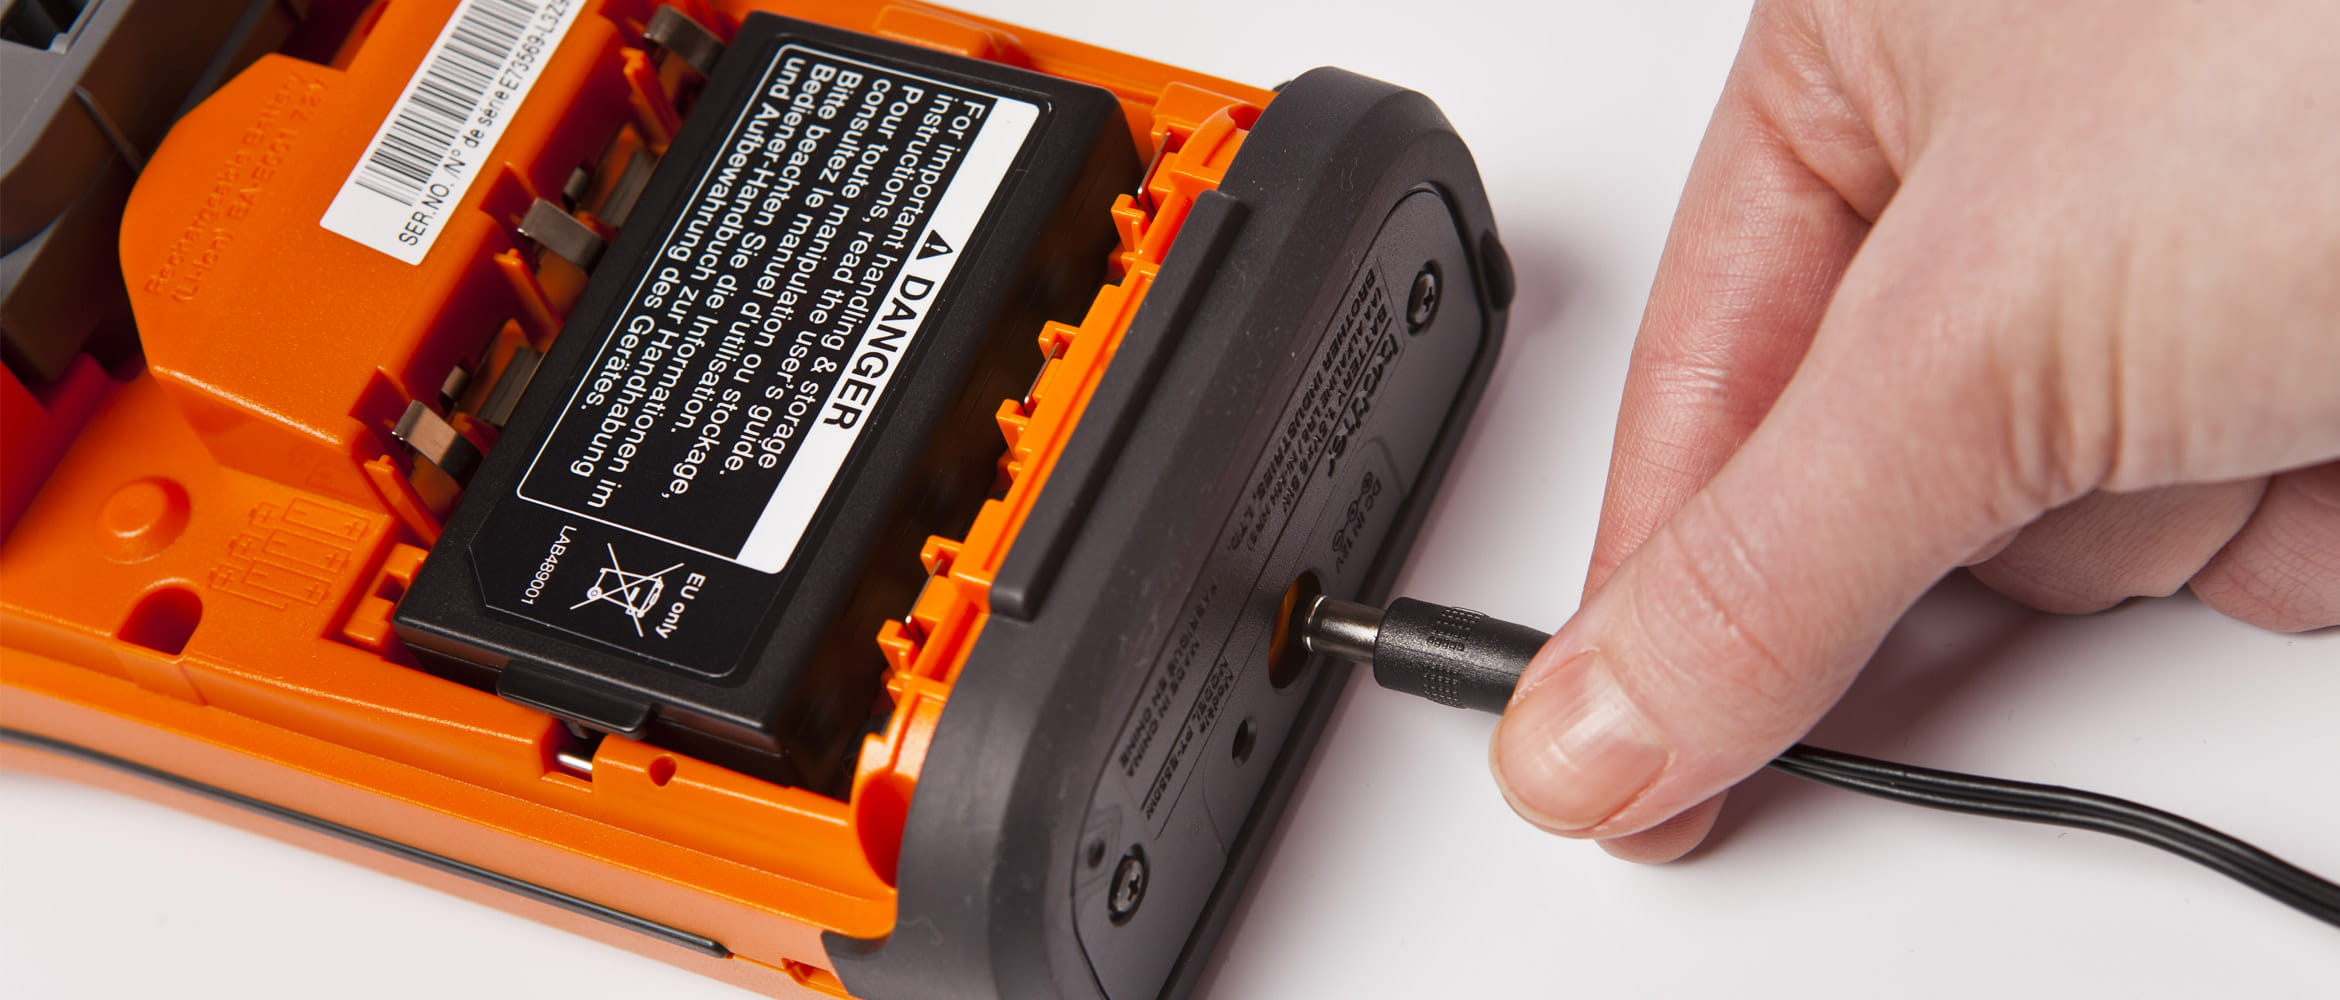 Brother-labelling-electrician-how-to-use-videos